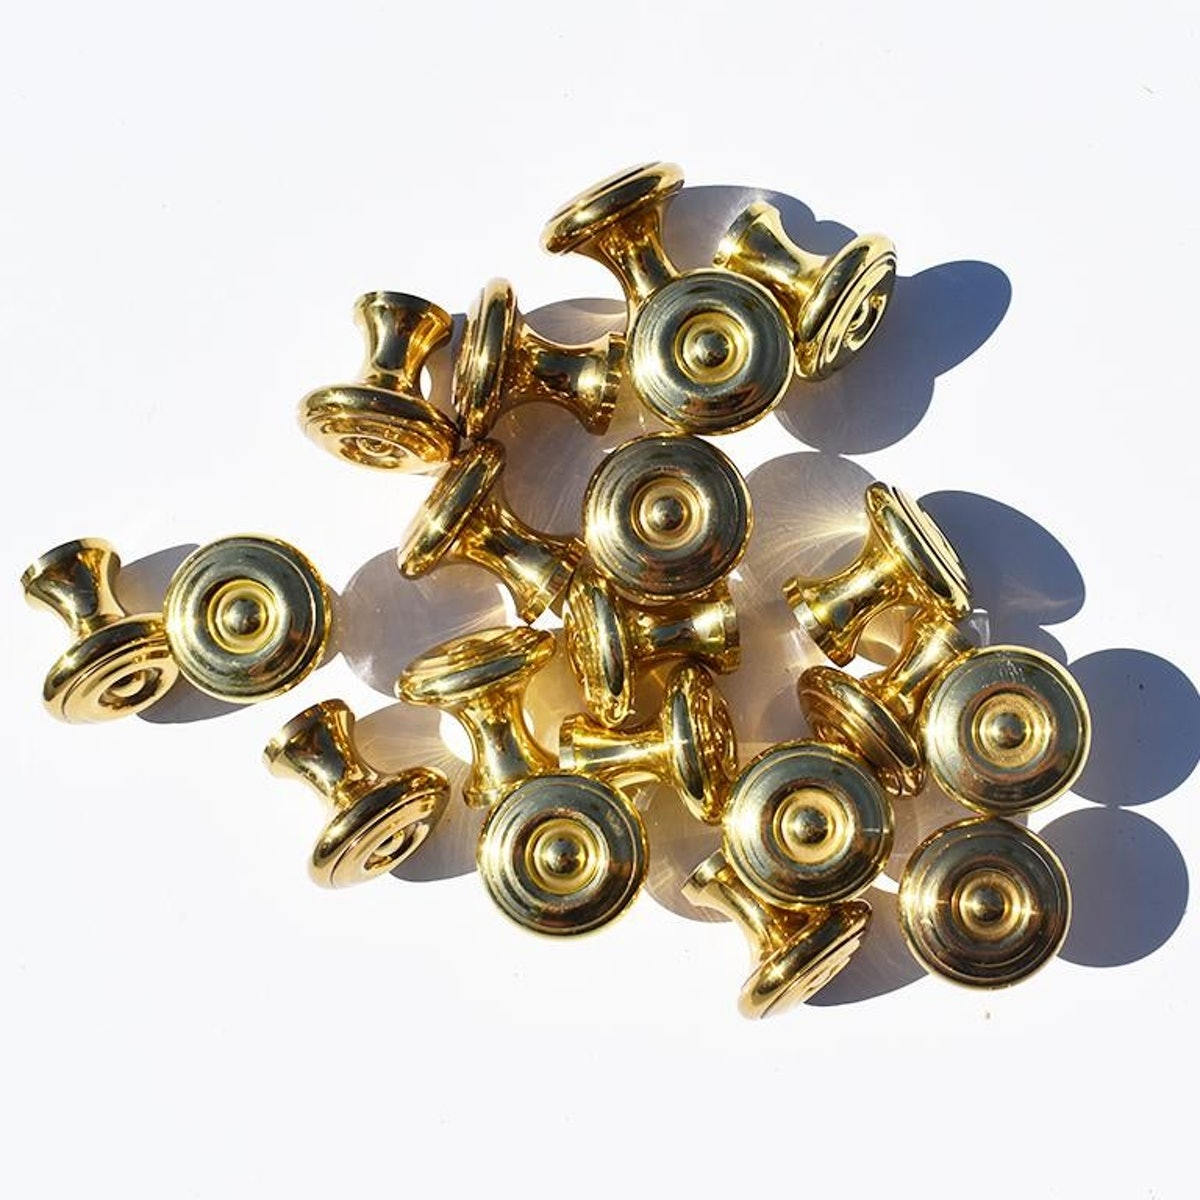 1970's Vintage Sherle Wagner Small Round Gold Drawer Pulls